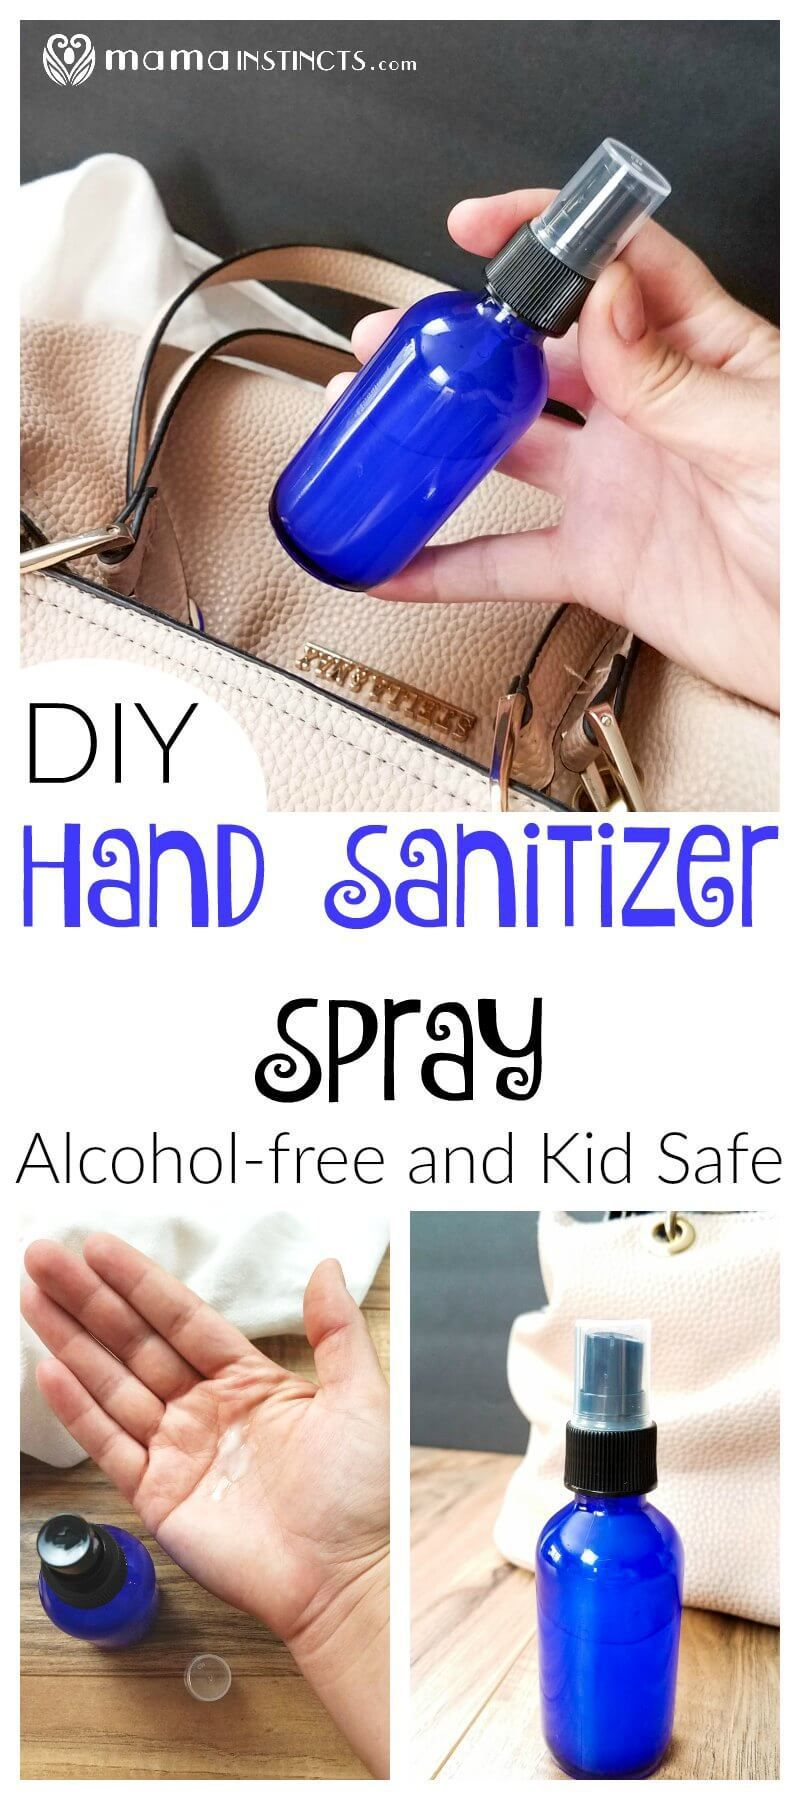 This Article Will Show You Why Hand Sanitizers Are Not The Perfect